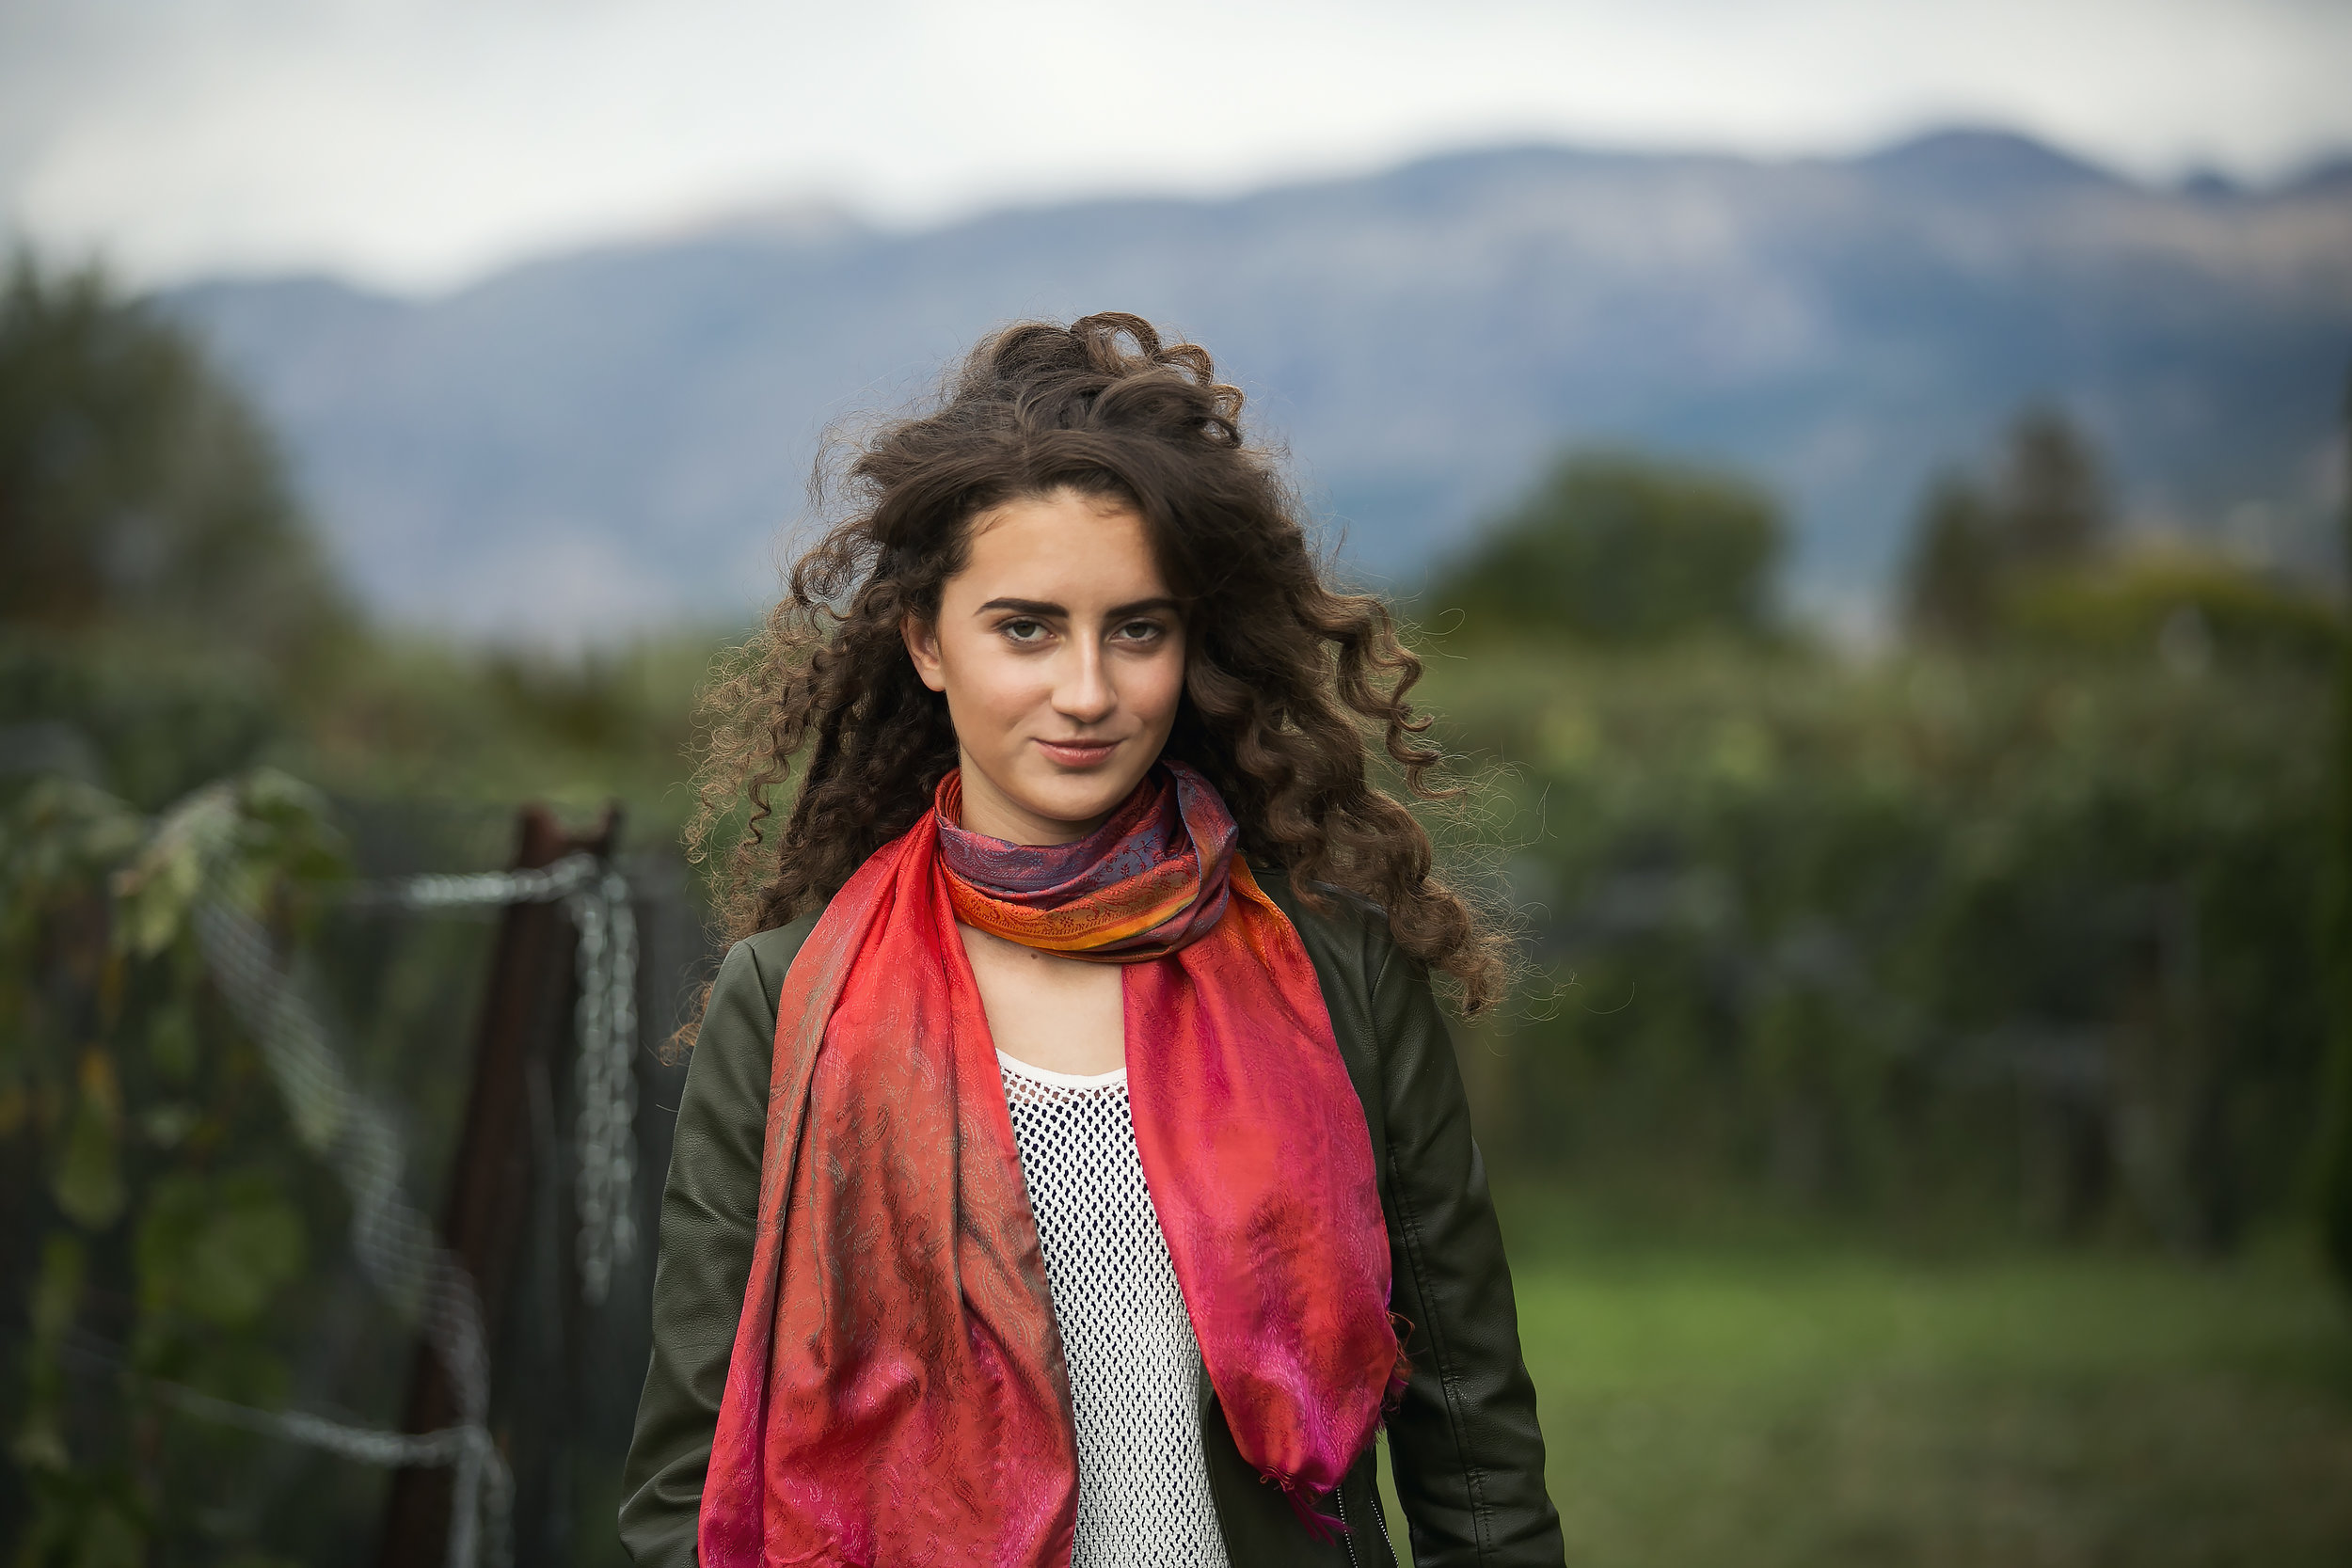 Johanna in the vineyard - looking stunning with her hair and makeup done by Tamie Taylor